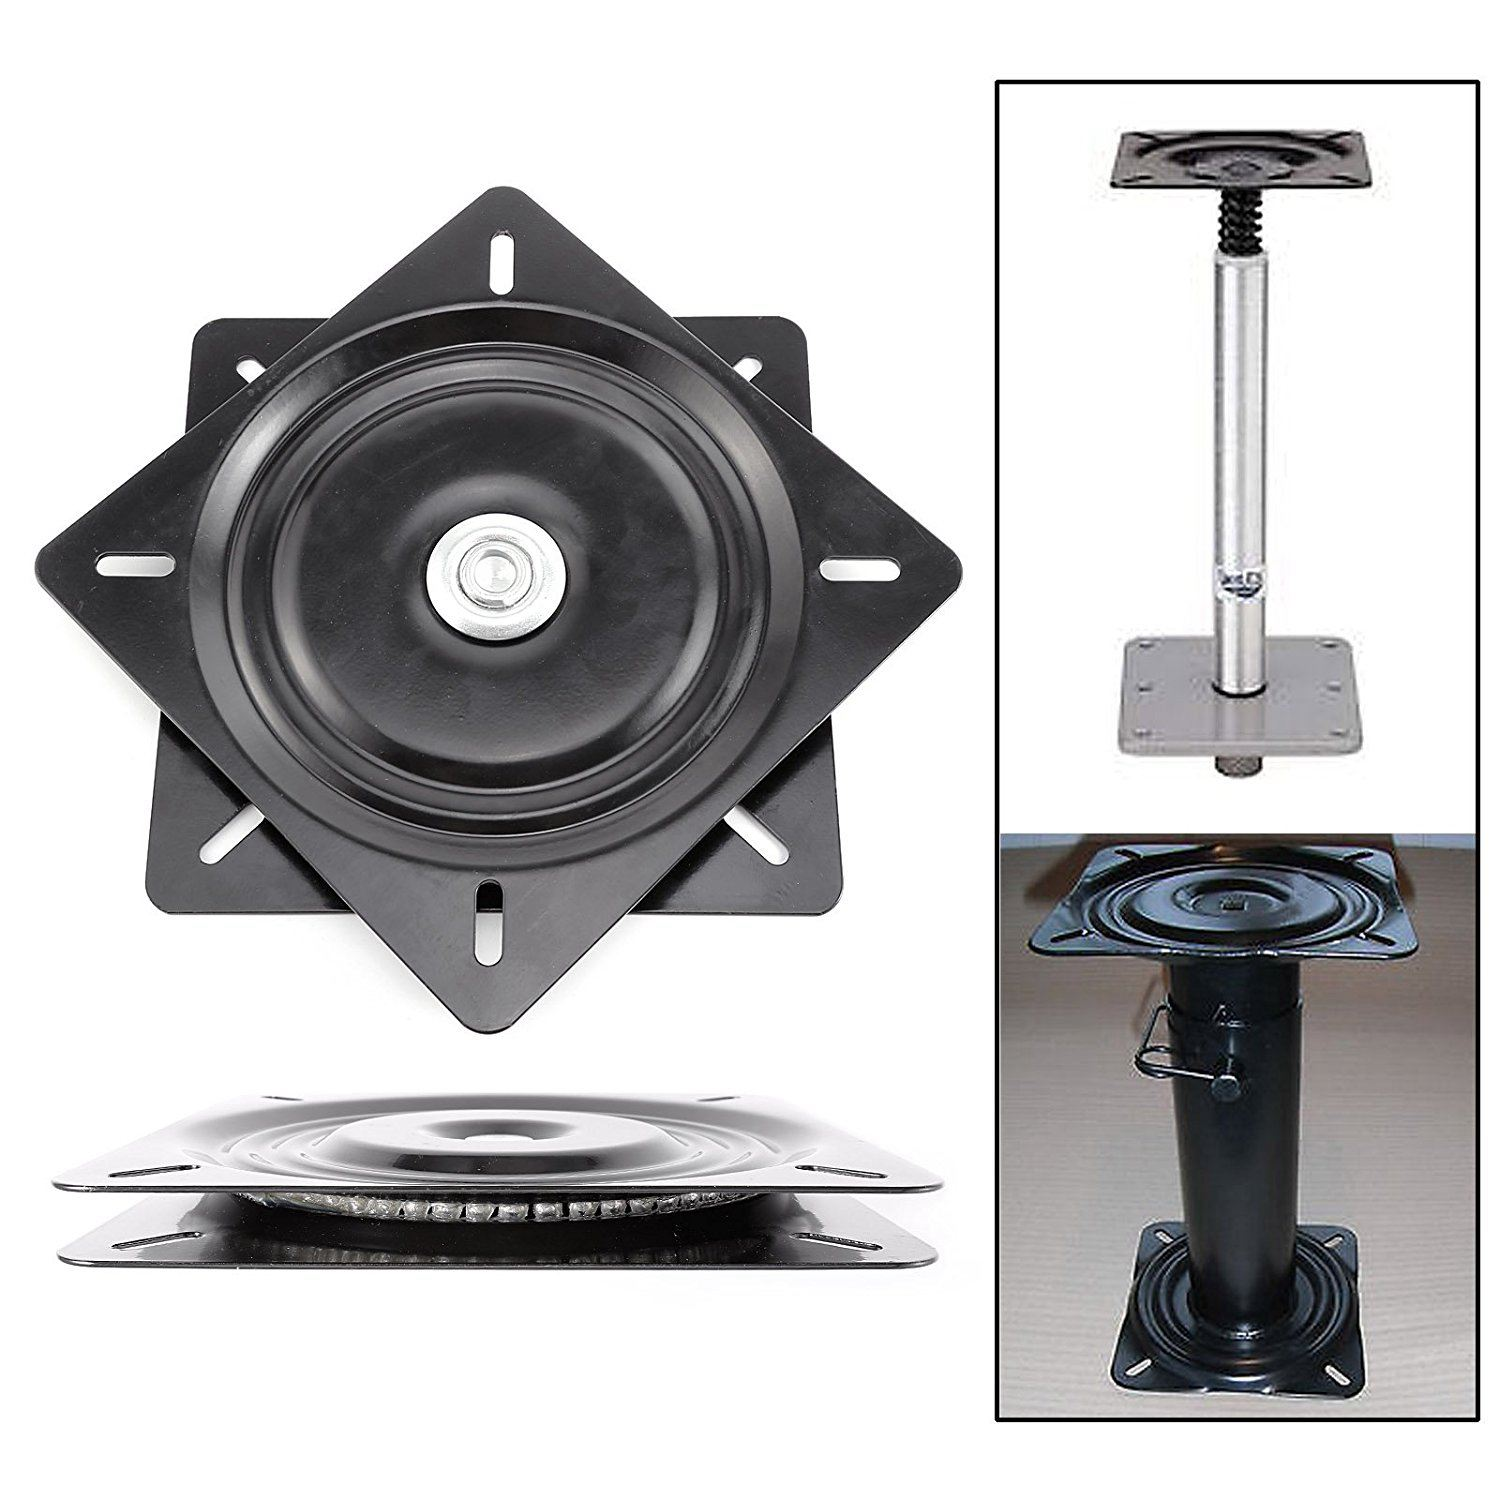 HOT 8 inch boat seat swivel plate fishing boat marine seat swivel rotation 360 degree universal rotation 20 x 20 x 2 cmHOT 8 inch boat seat swivel plate fishing boat marine seat swivel rotation 360 degree universal rotation 20 x 20 x 2 cm